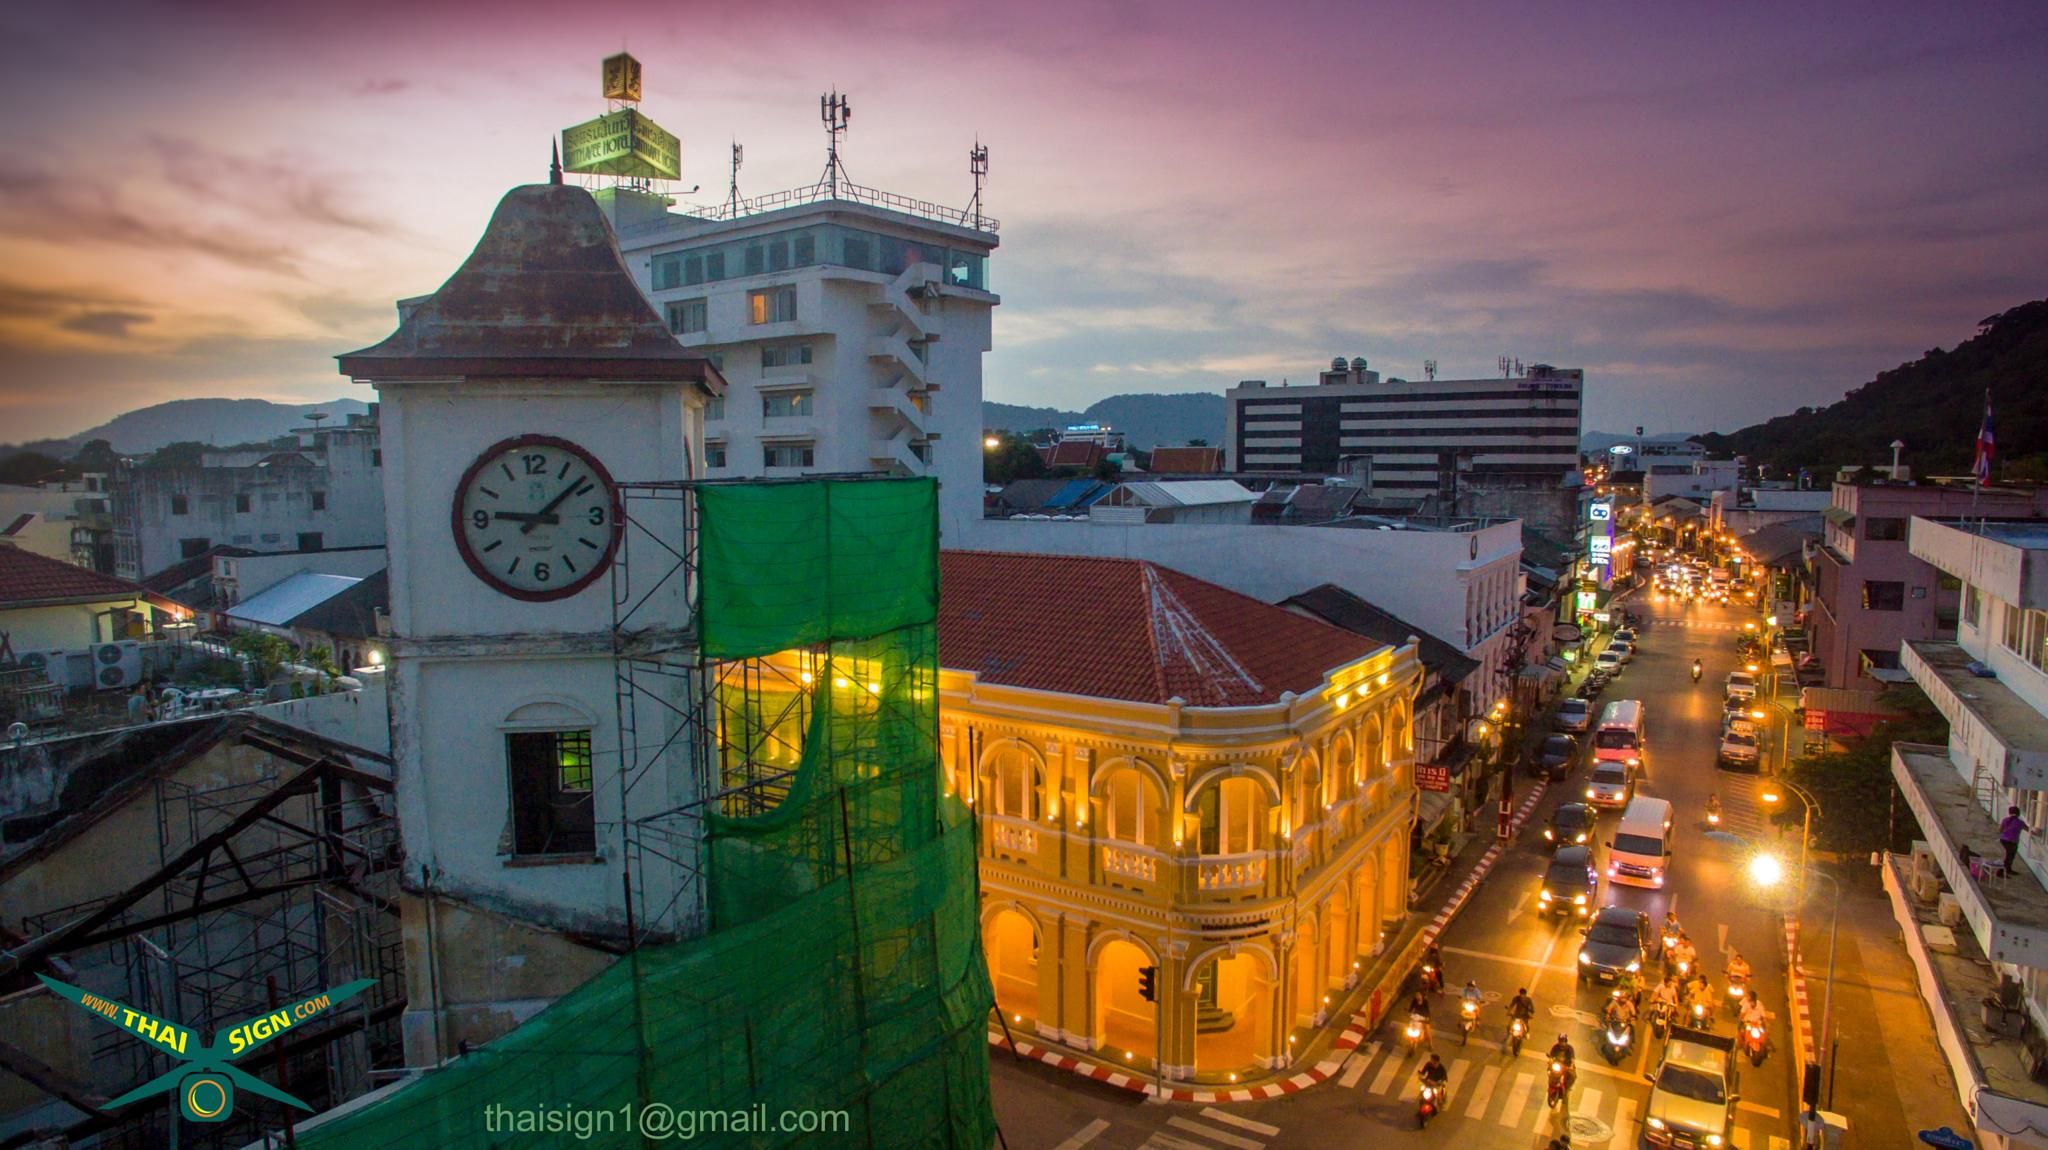 Phuket town by thaisign1